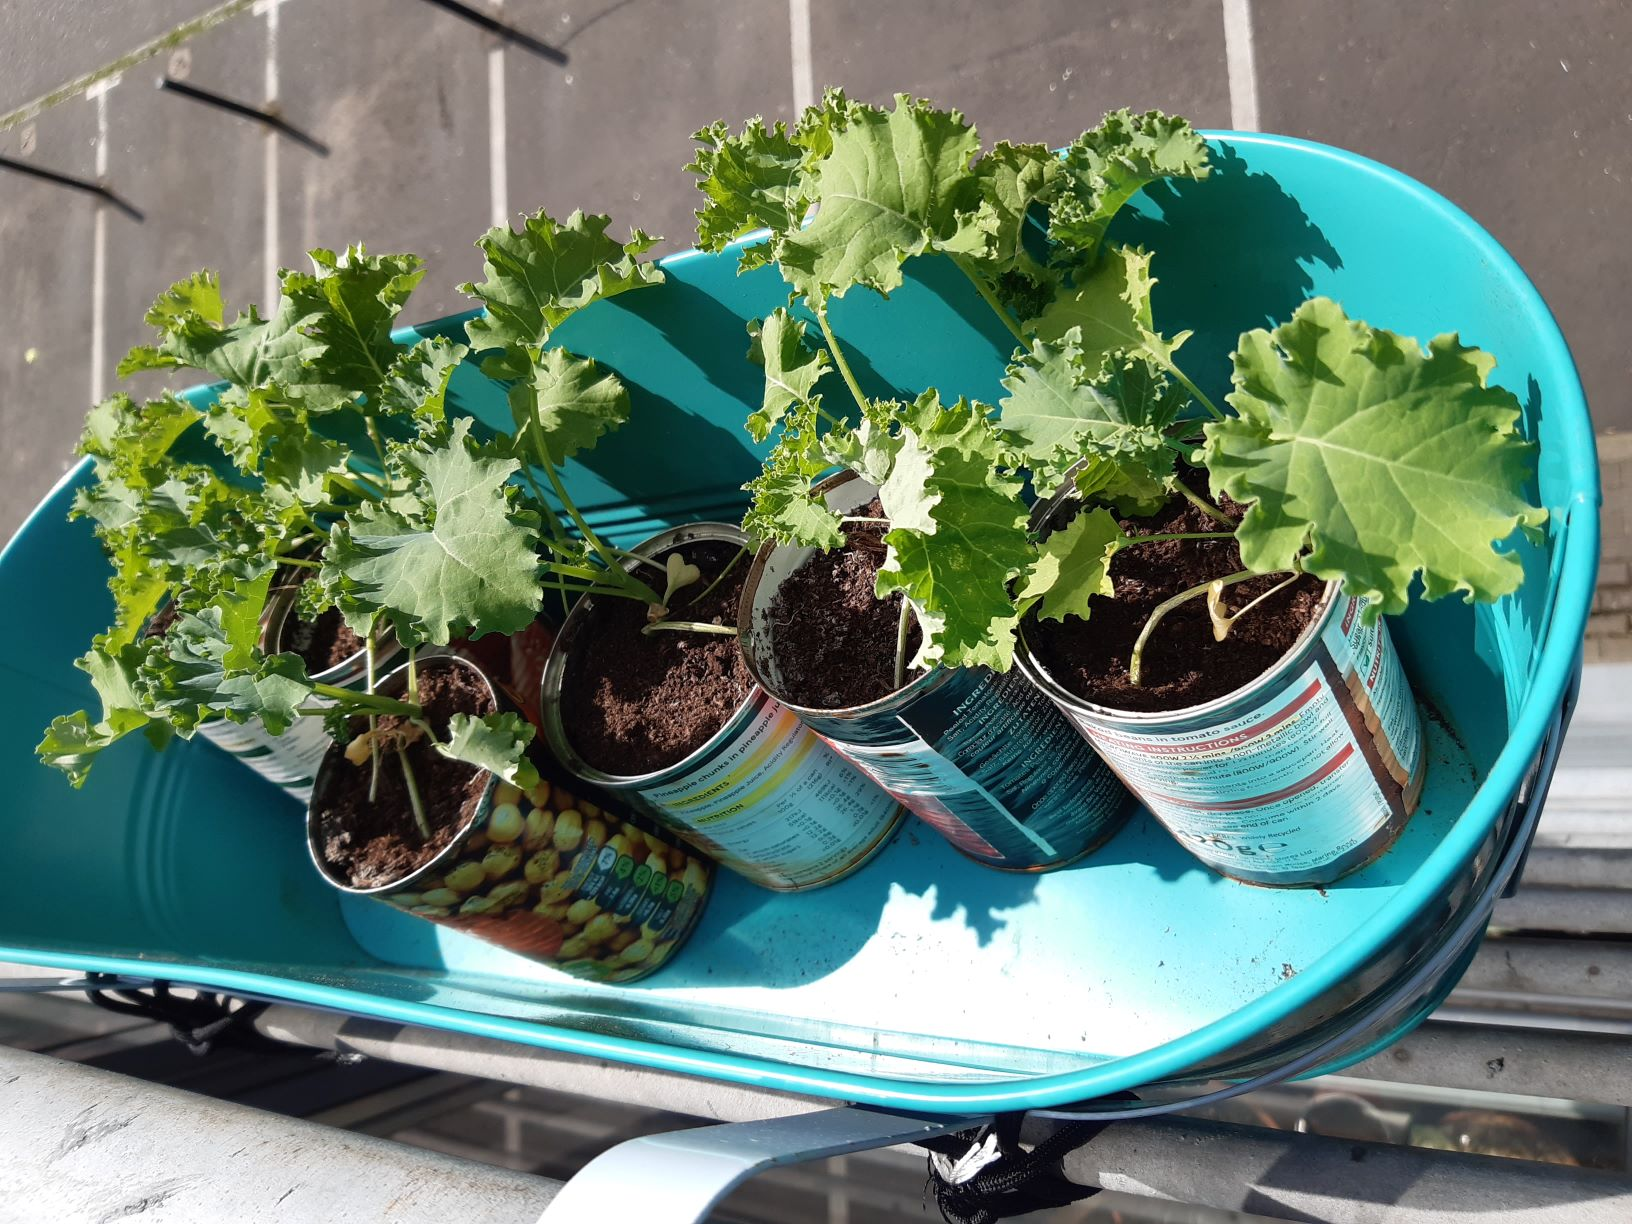 Image shows give cans with kale growing in them. The cans are in another turquoise window box, attached to the railing with hooks and parachute cord.